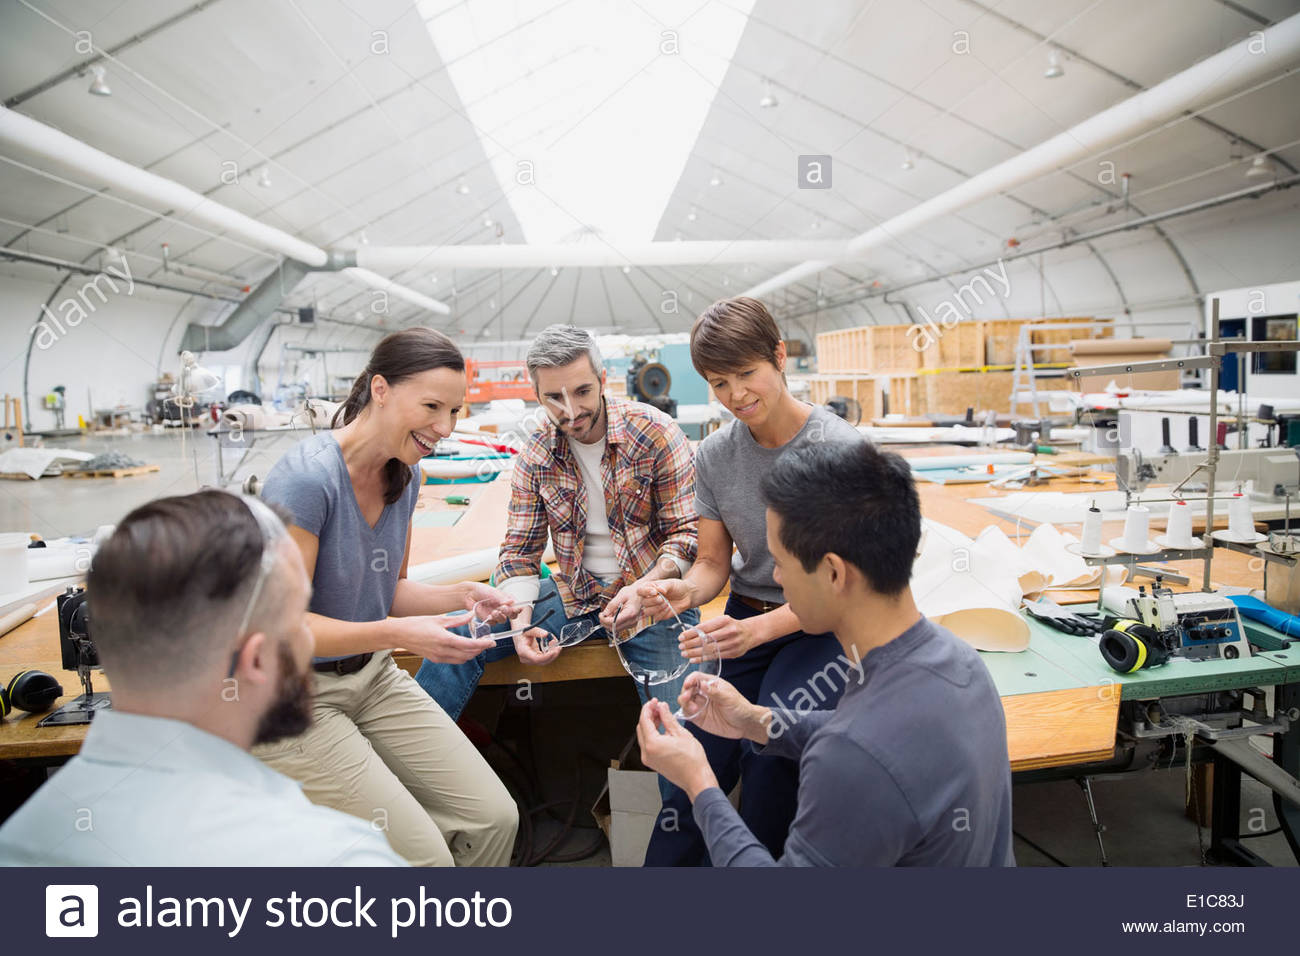 Workers with protective eyewear in textile manufacturing plant - Stock Image